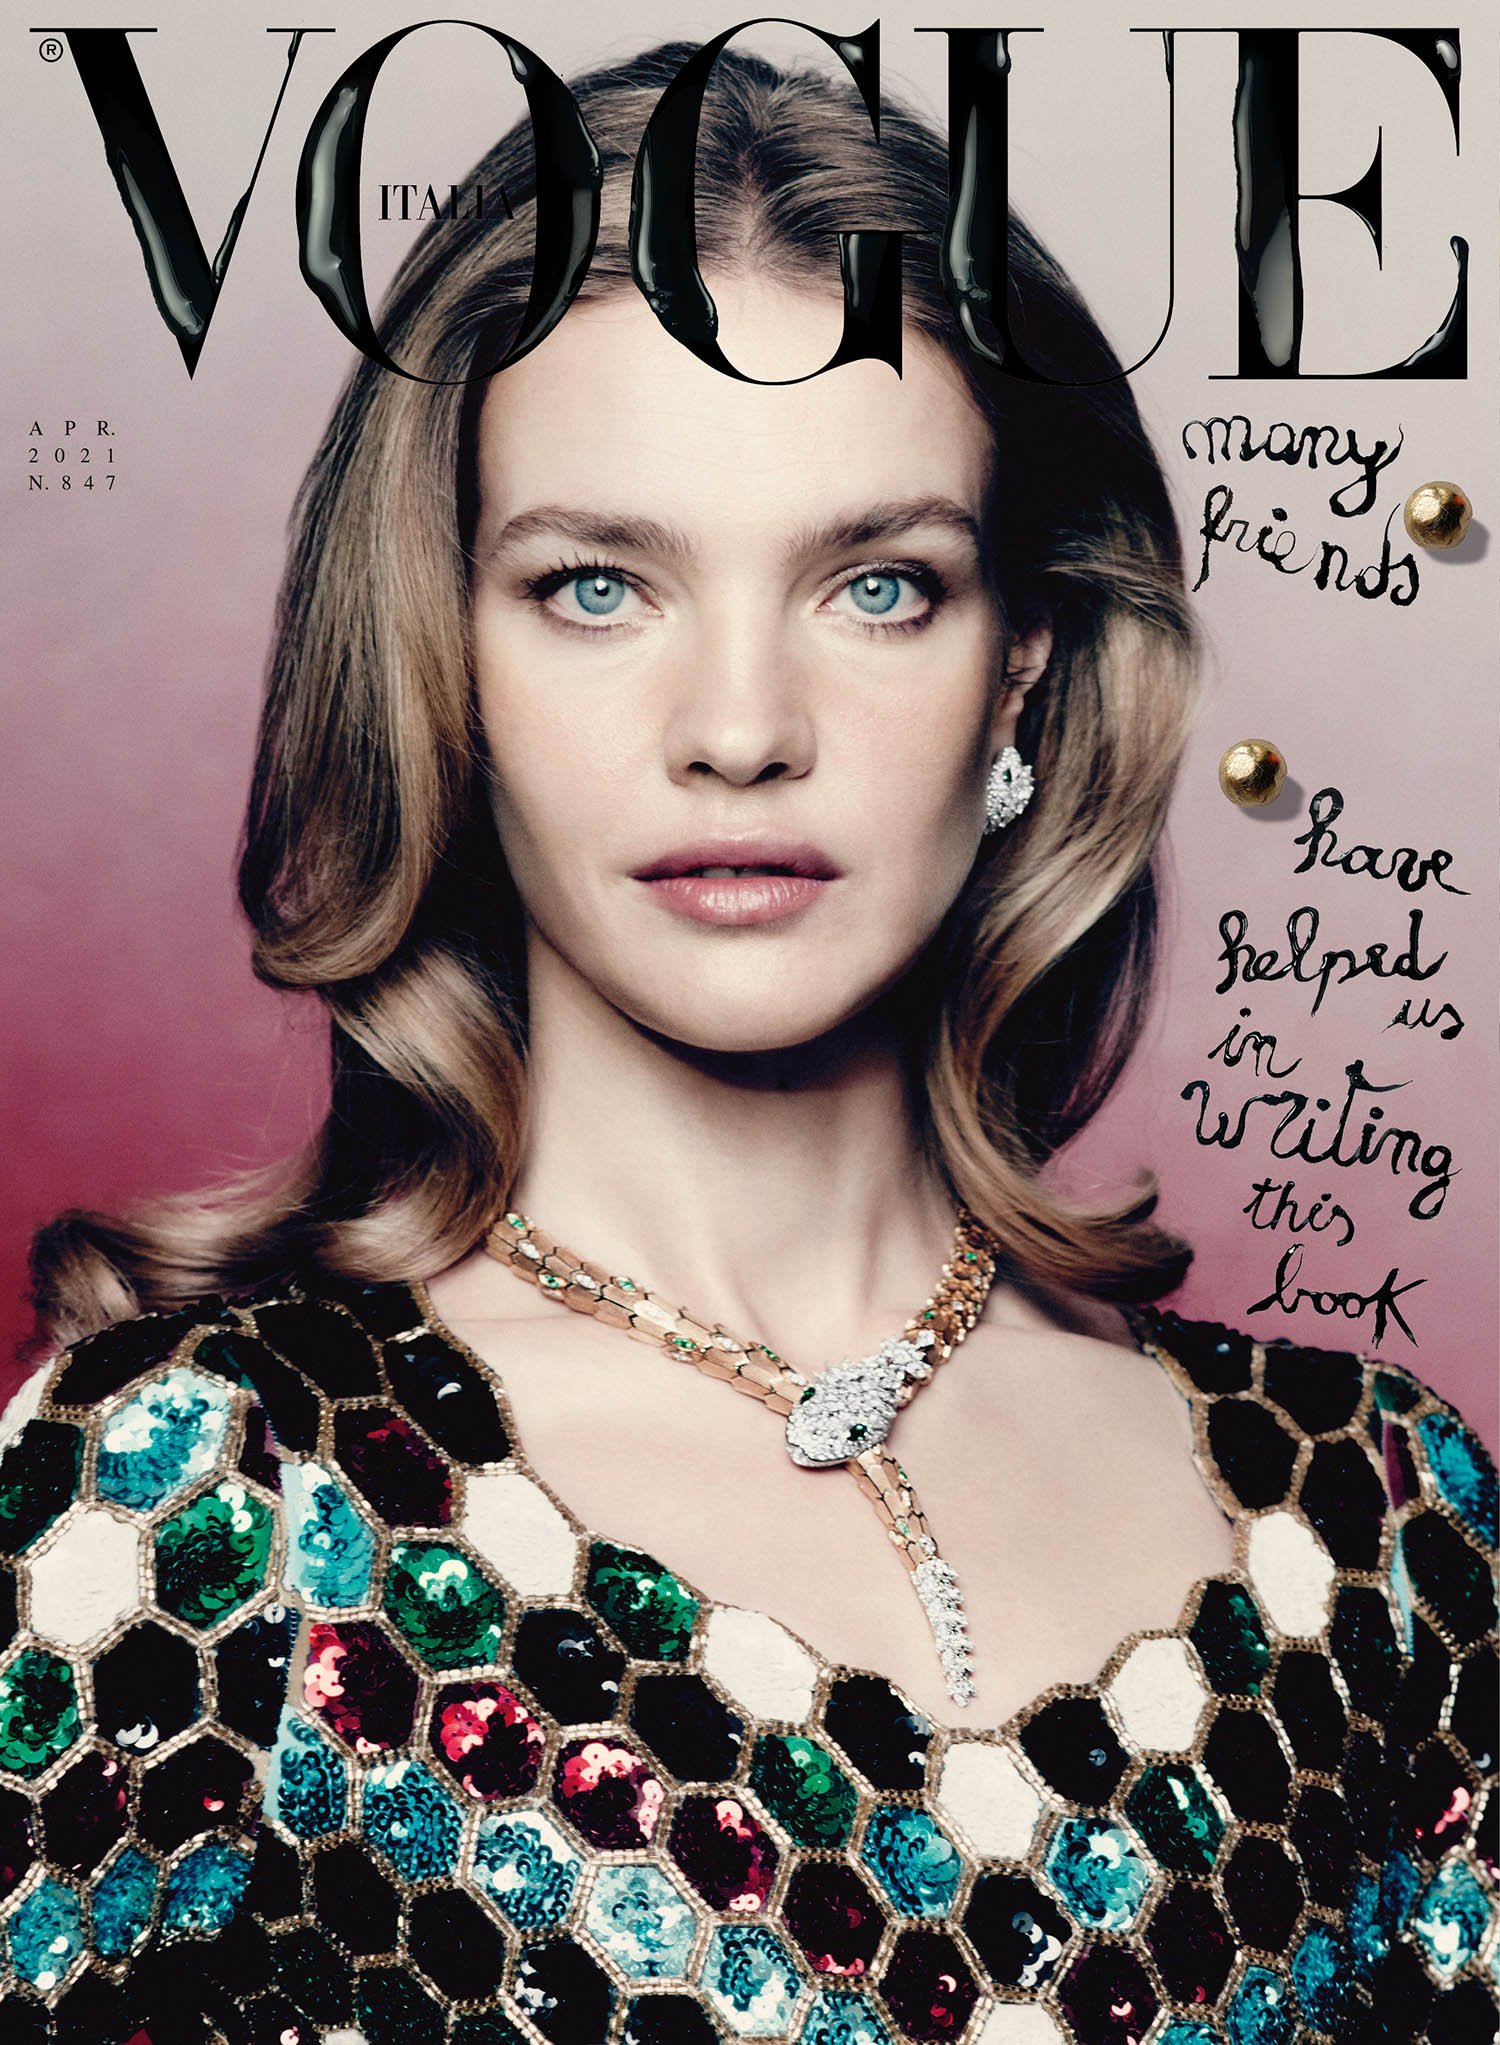 Natalia Vodianova covers Vogue Italia April 2021 by Paolo Roversi